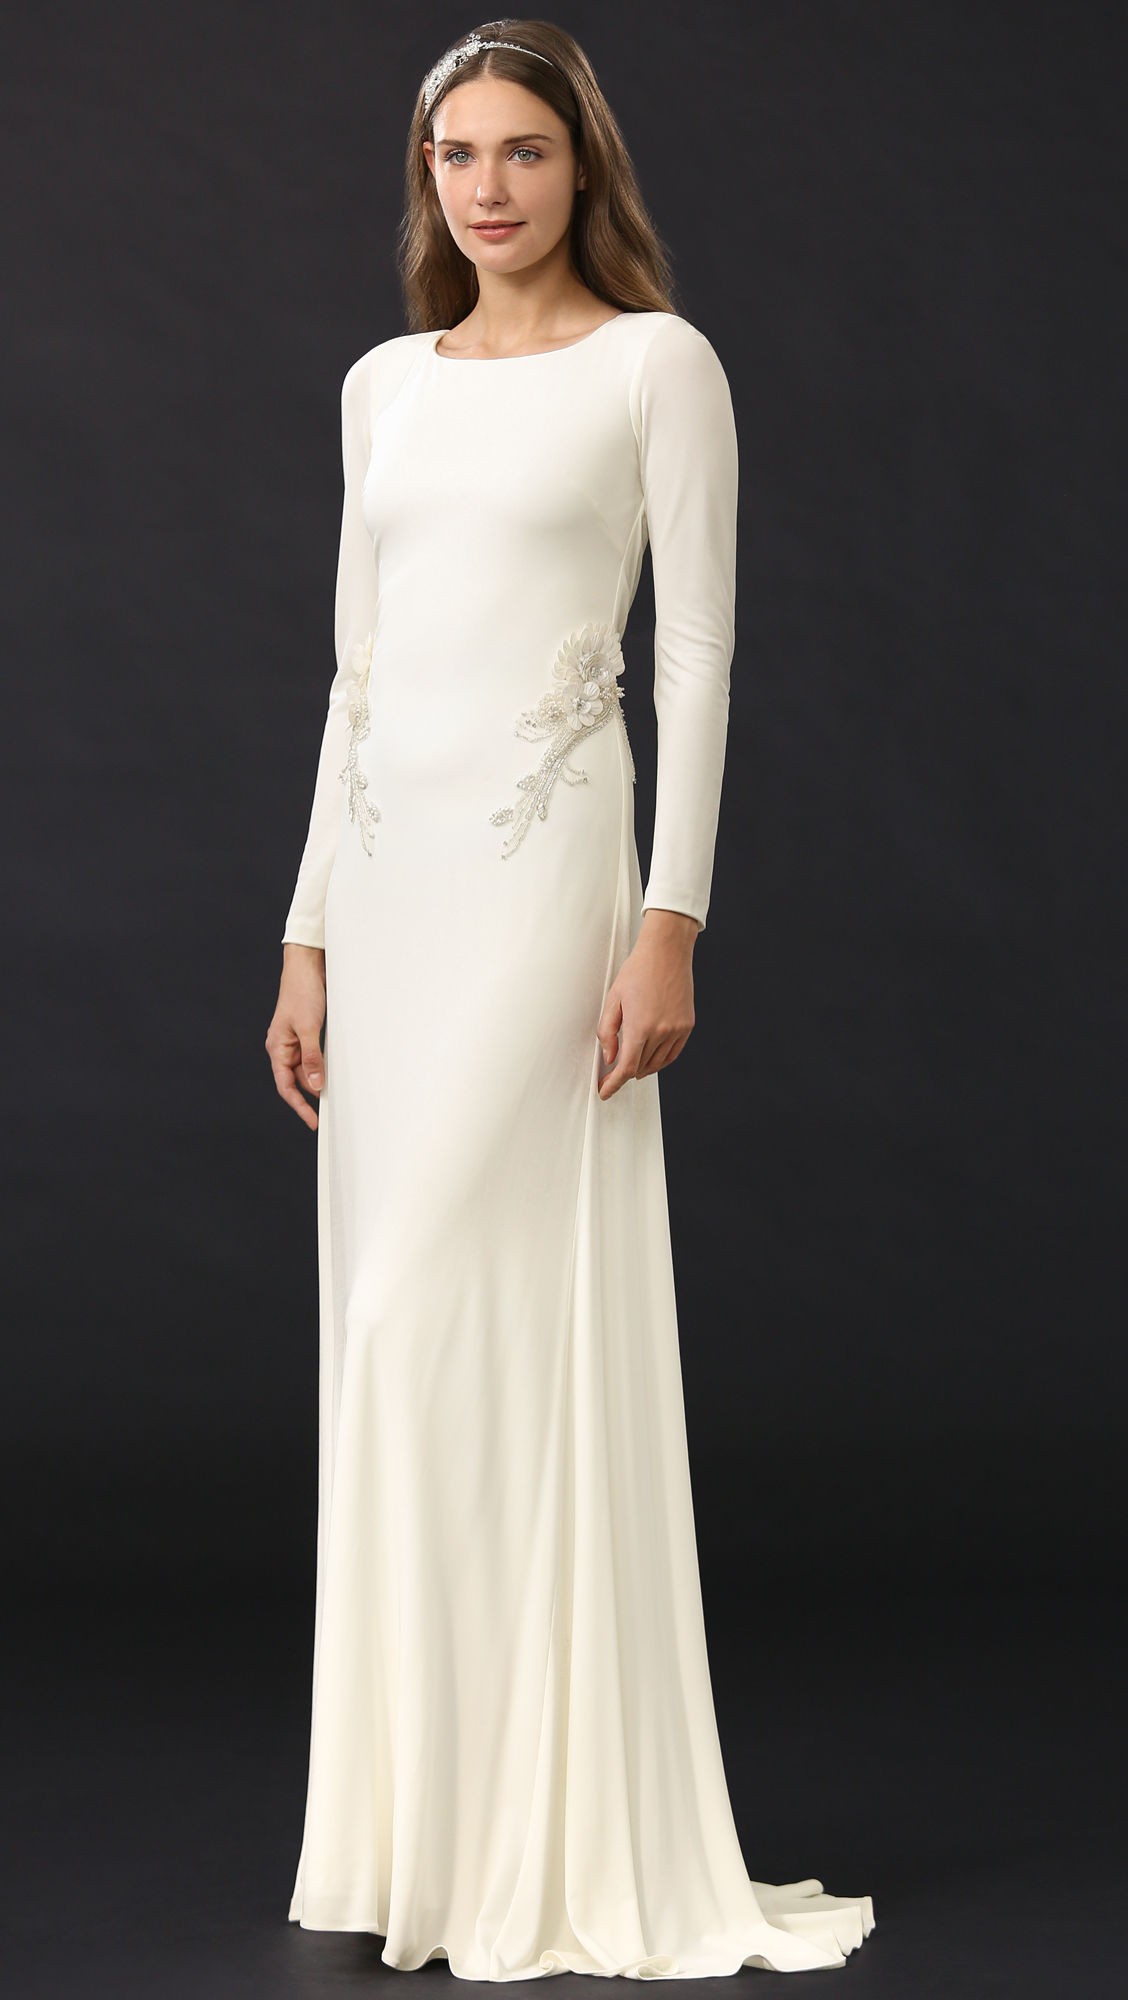 Lyst - Badgley mischka Open Back Jersey Gown in White